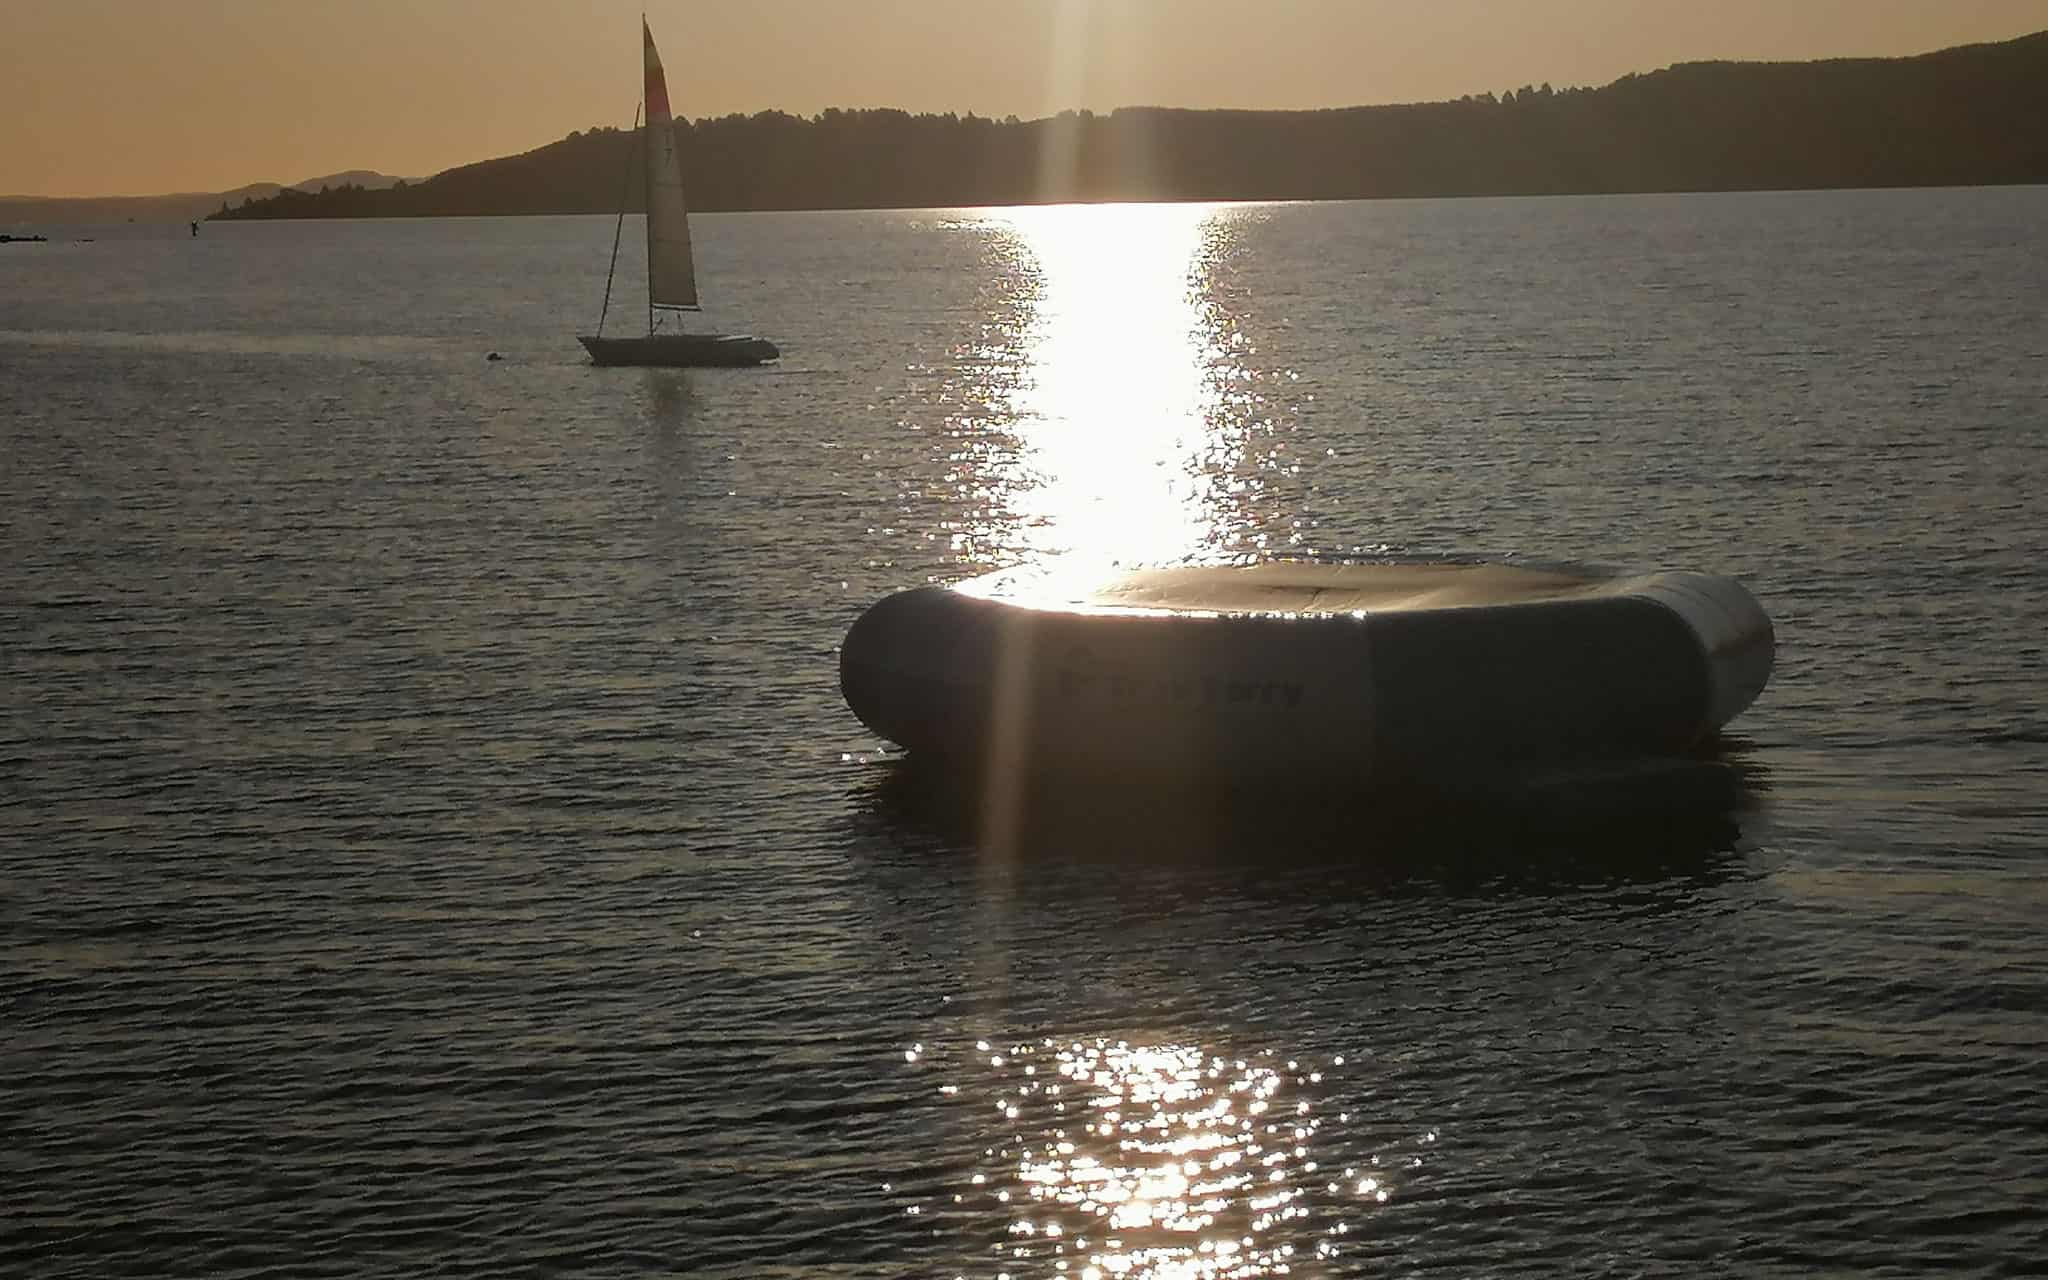 Stay-in-Taupo-Accommodation-Bed-and-Breakfast-in-Taupo-Waikato-New-Zealand-17